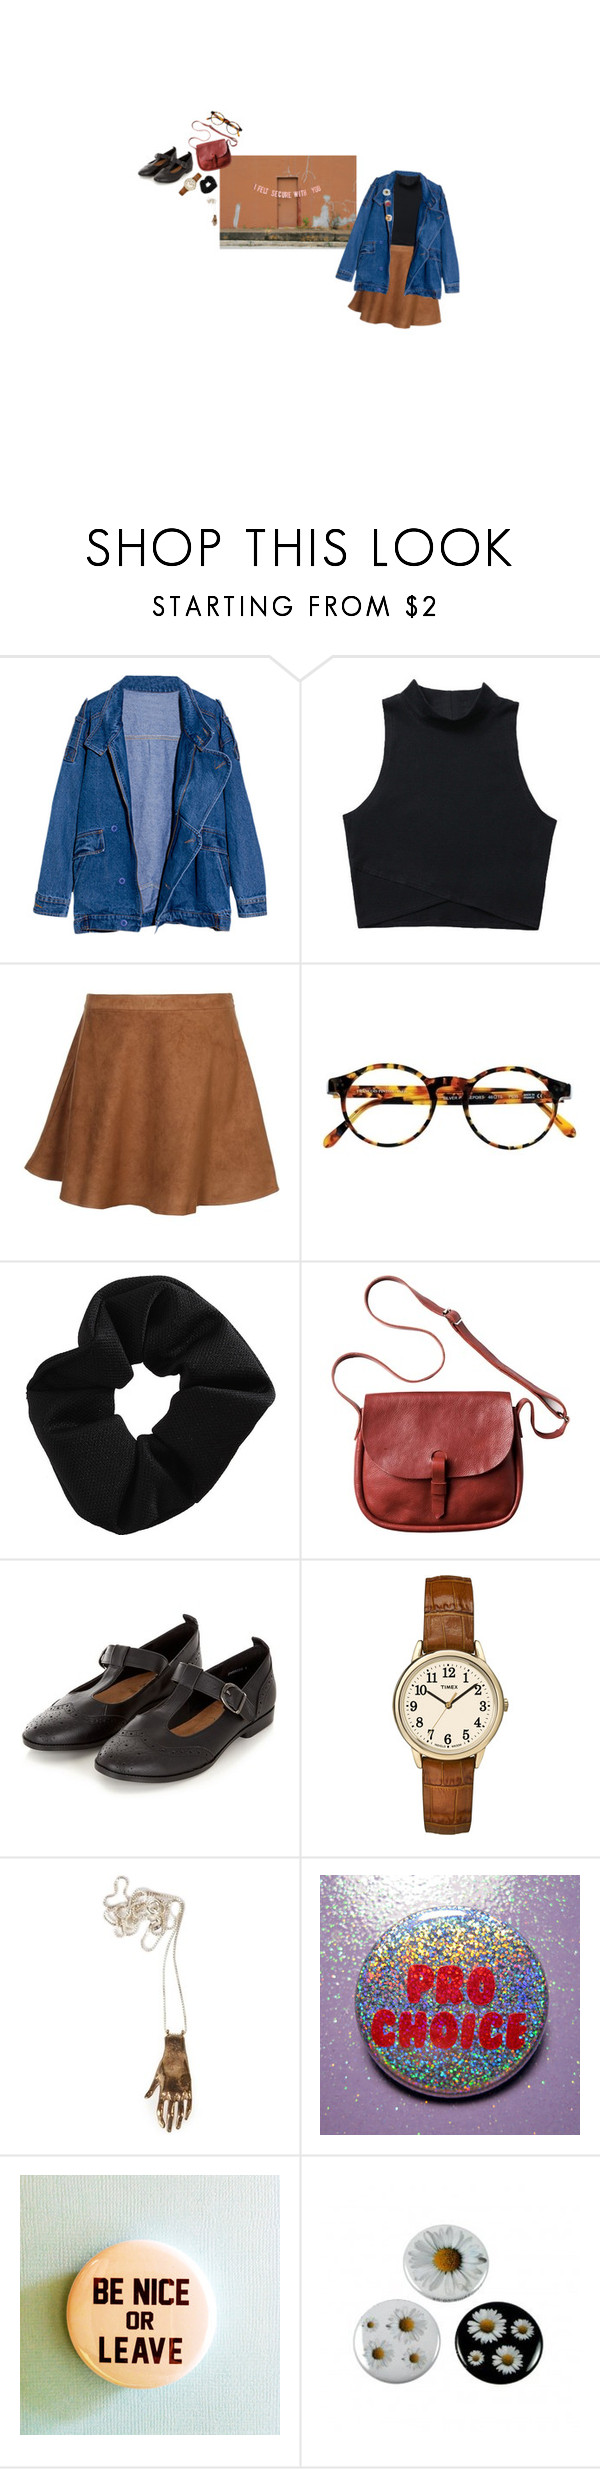 """Give me a beat to smash the patriarchy to"" by fiercelyfloral ❤ liked on Polyvore featuring New Look Inspire, François Pinton, Topshop, Toast and Timex"